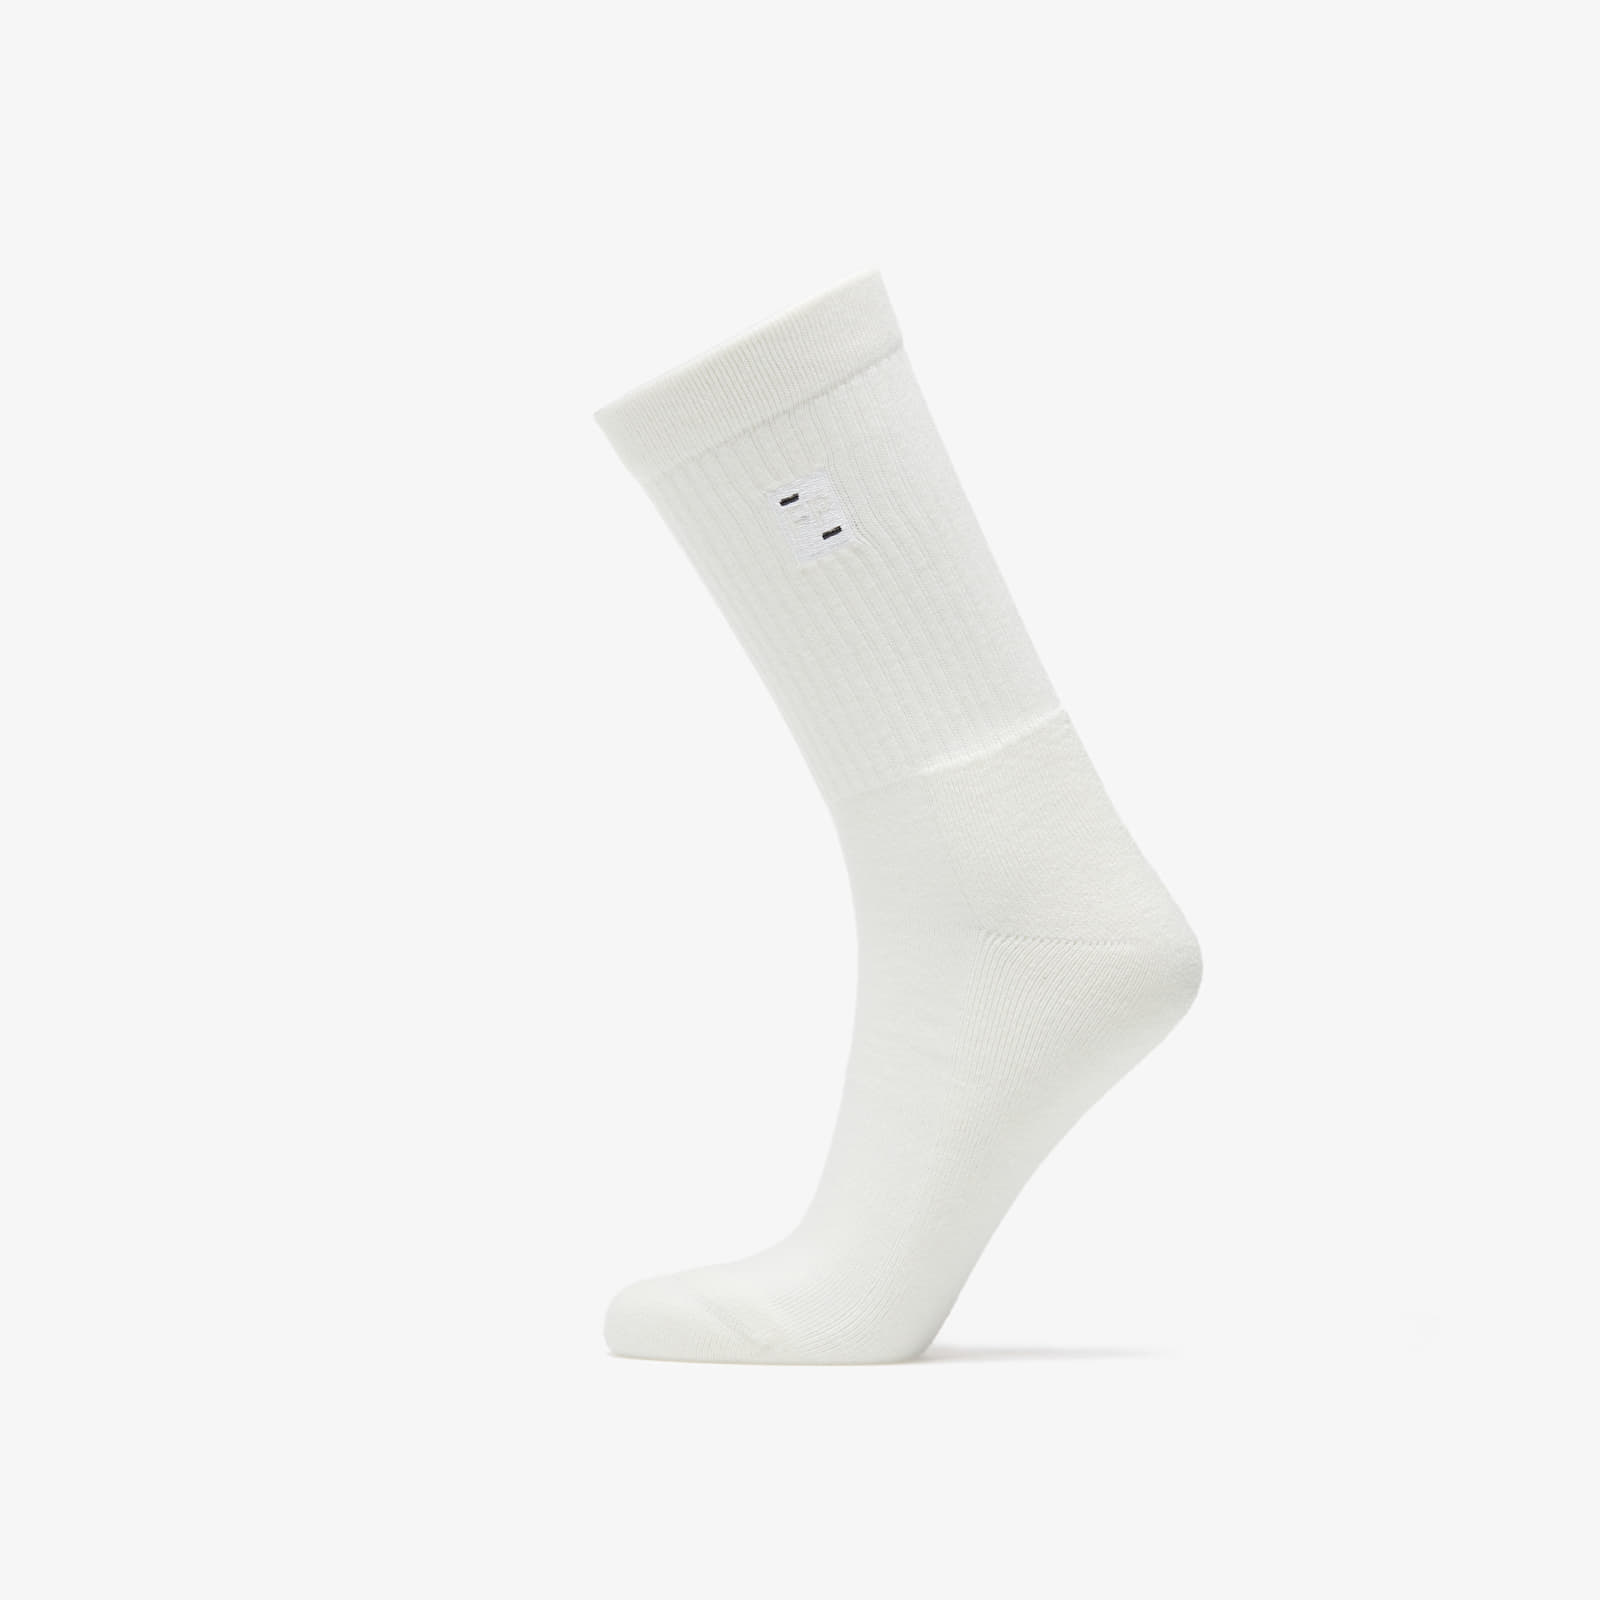 Chaussettes Filling Pieces Socks Two Stripe White